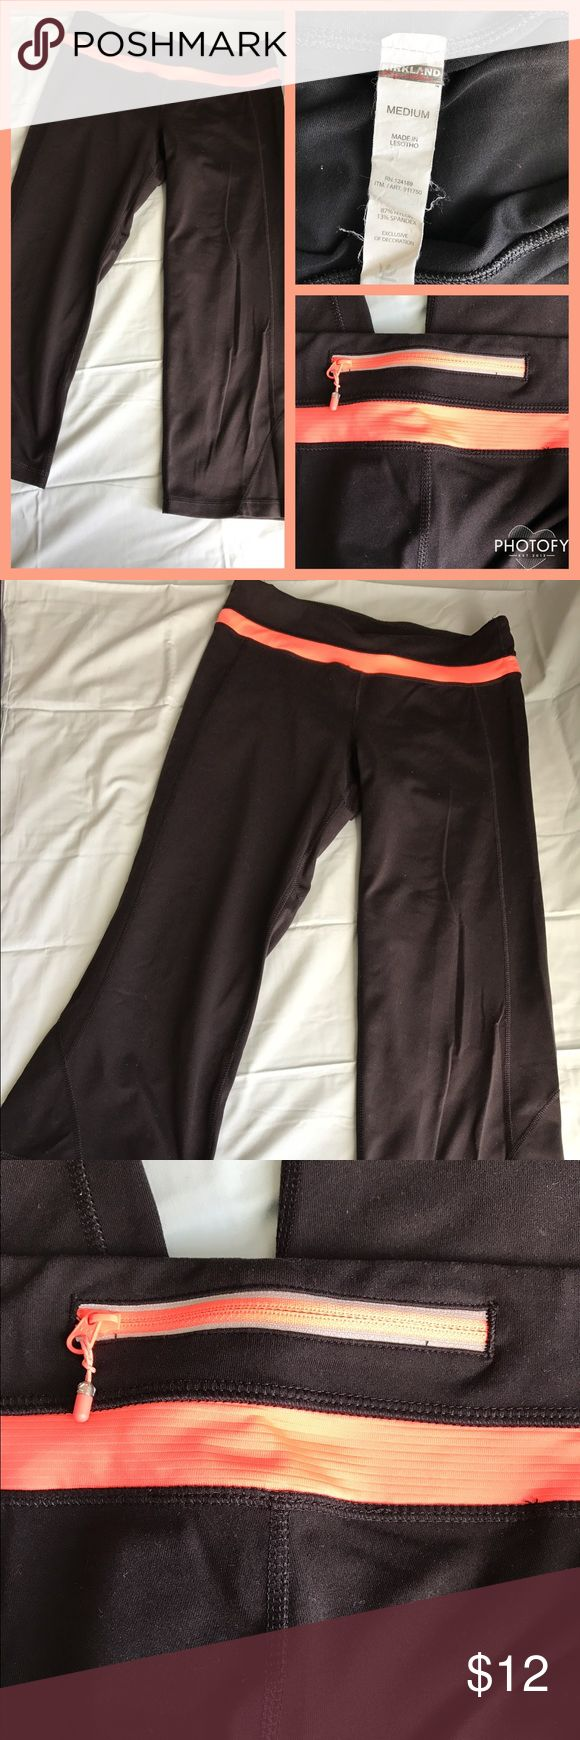 PRICE DROP Kirkland Capris Black/Orange Size M 🔶Kirkland(Costco) Capris Black/Orange🔶 🔶Size M🔶 🔶Fabric: 87% Nylon 13% Spandex 🔶 🔶worn a couple times🔶 🔶Zipper in back to hold personal items like keys🔶  🔶NO damage, snags, stains SMOKE FREE HOME🔶 Kirkland Pants Capris